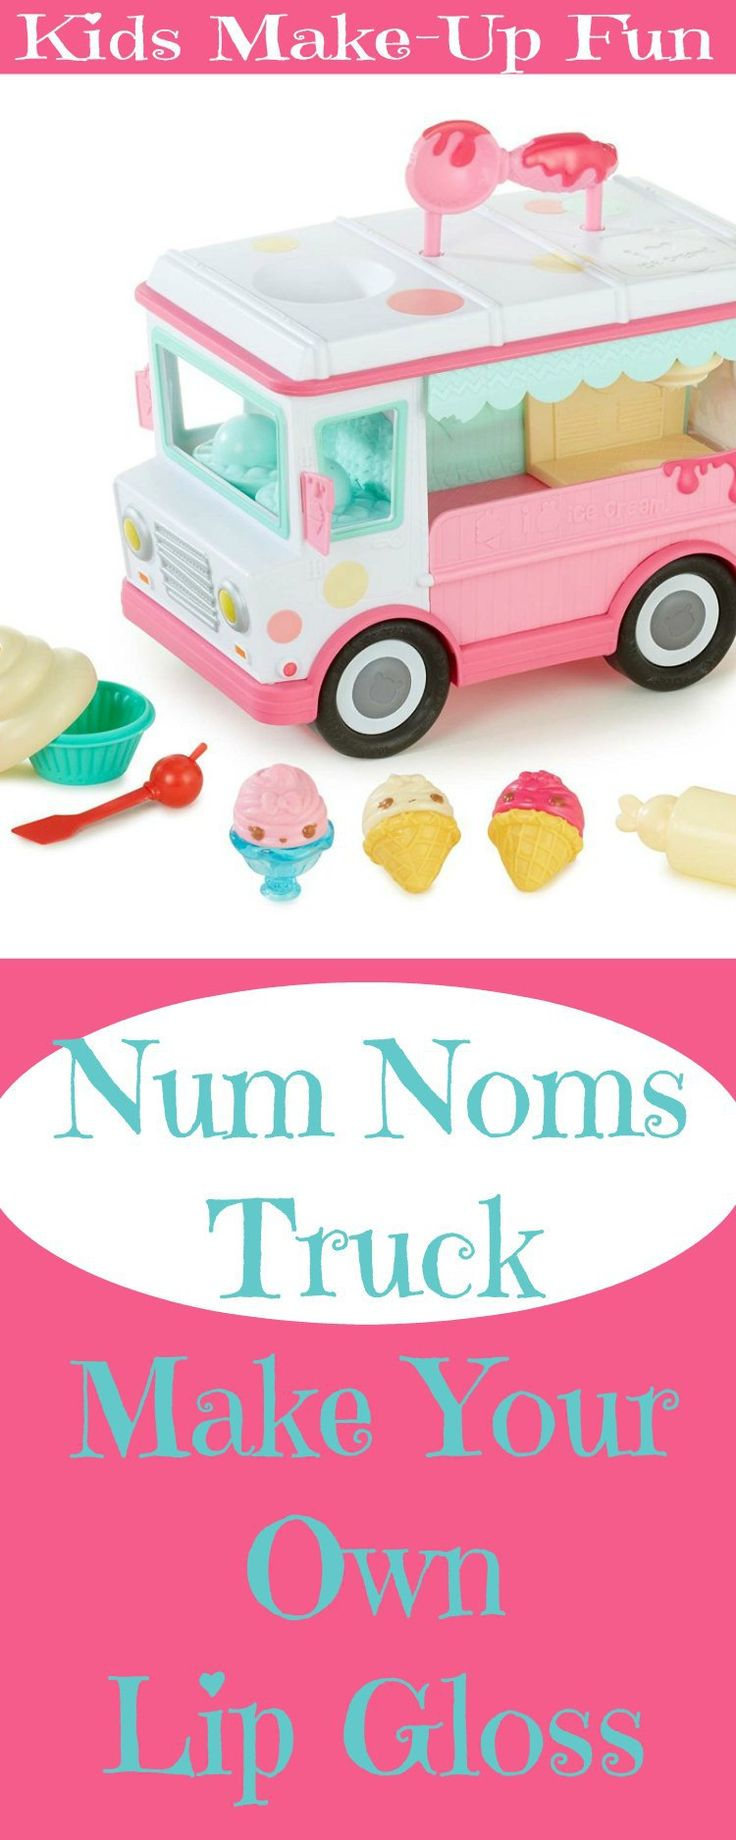 Num Noms Truck Lip Gloss Kit helps kids make their own flavored lip gloss. For kids into fashion and make-up, this is thrilling. Learn how today!